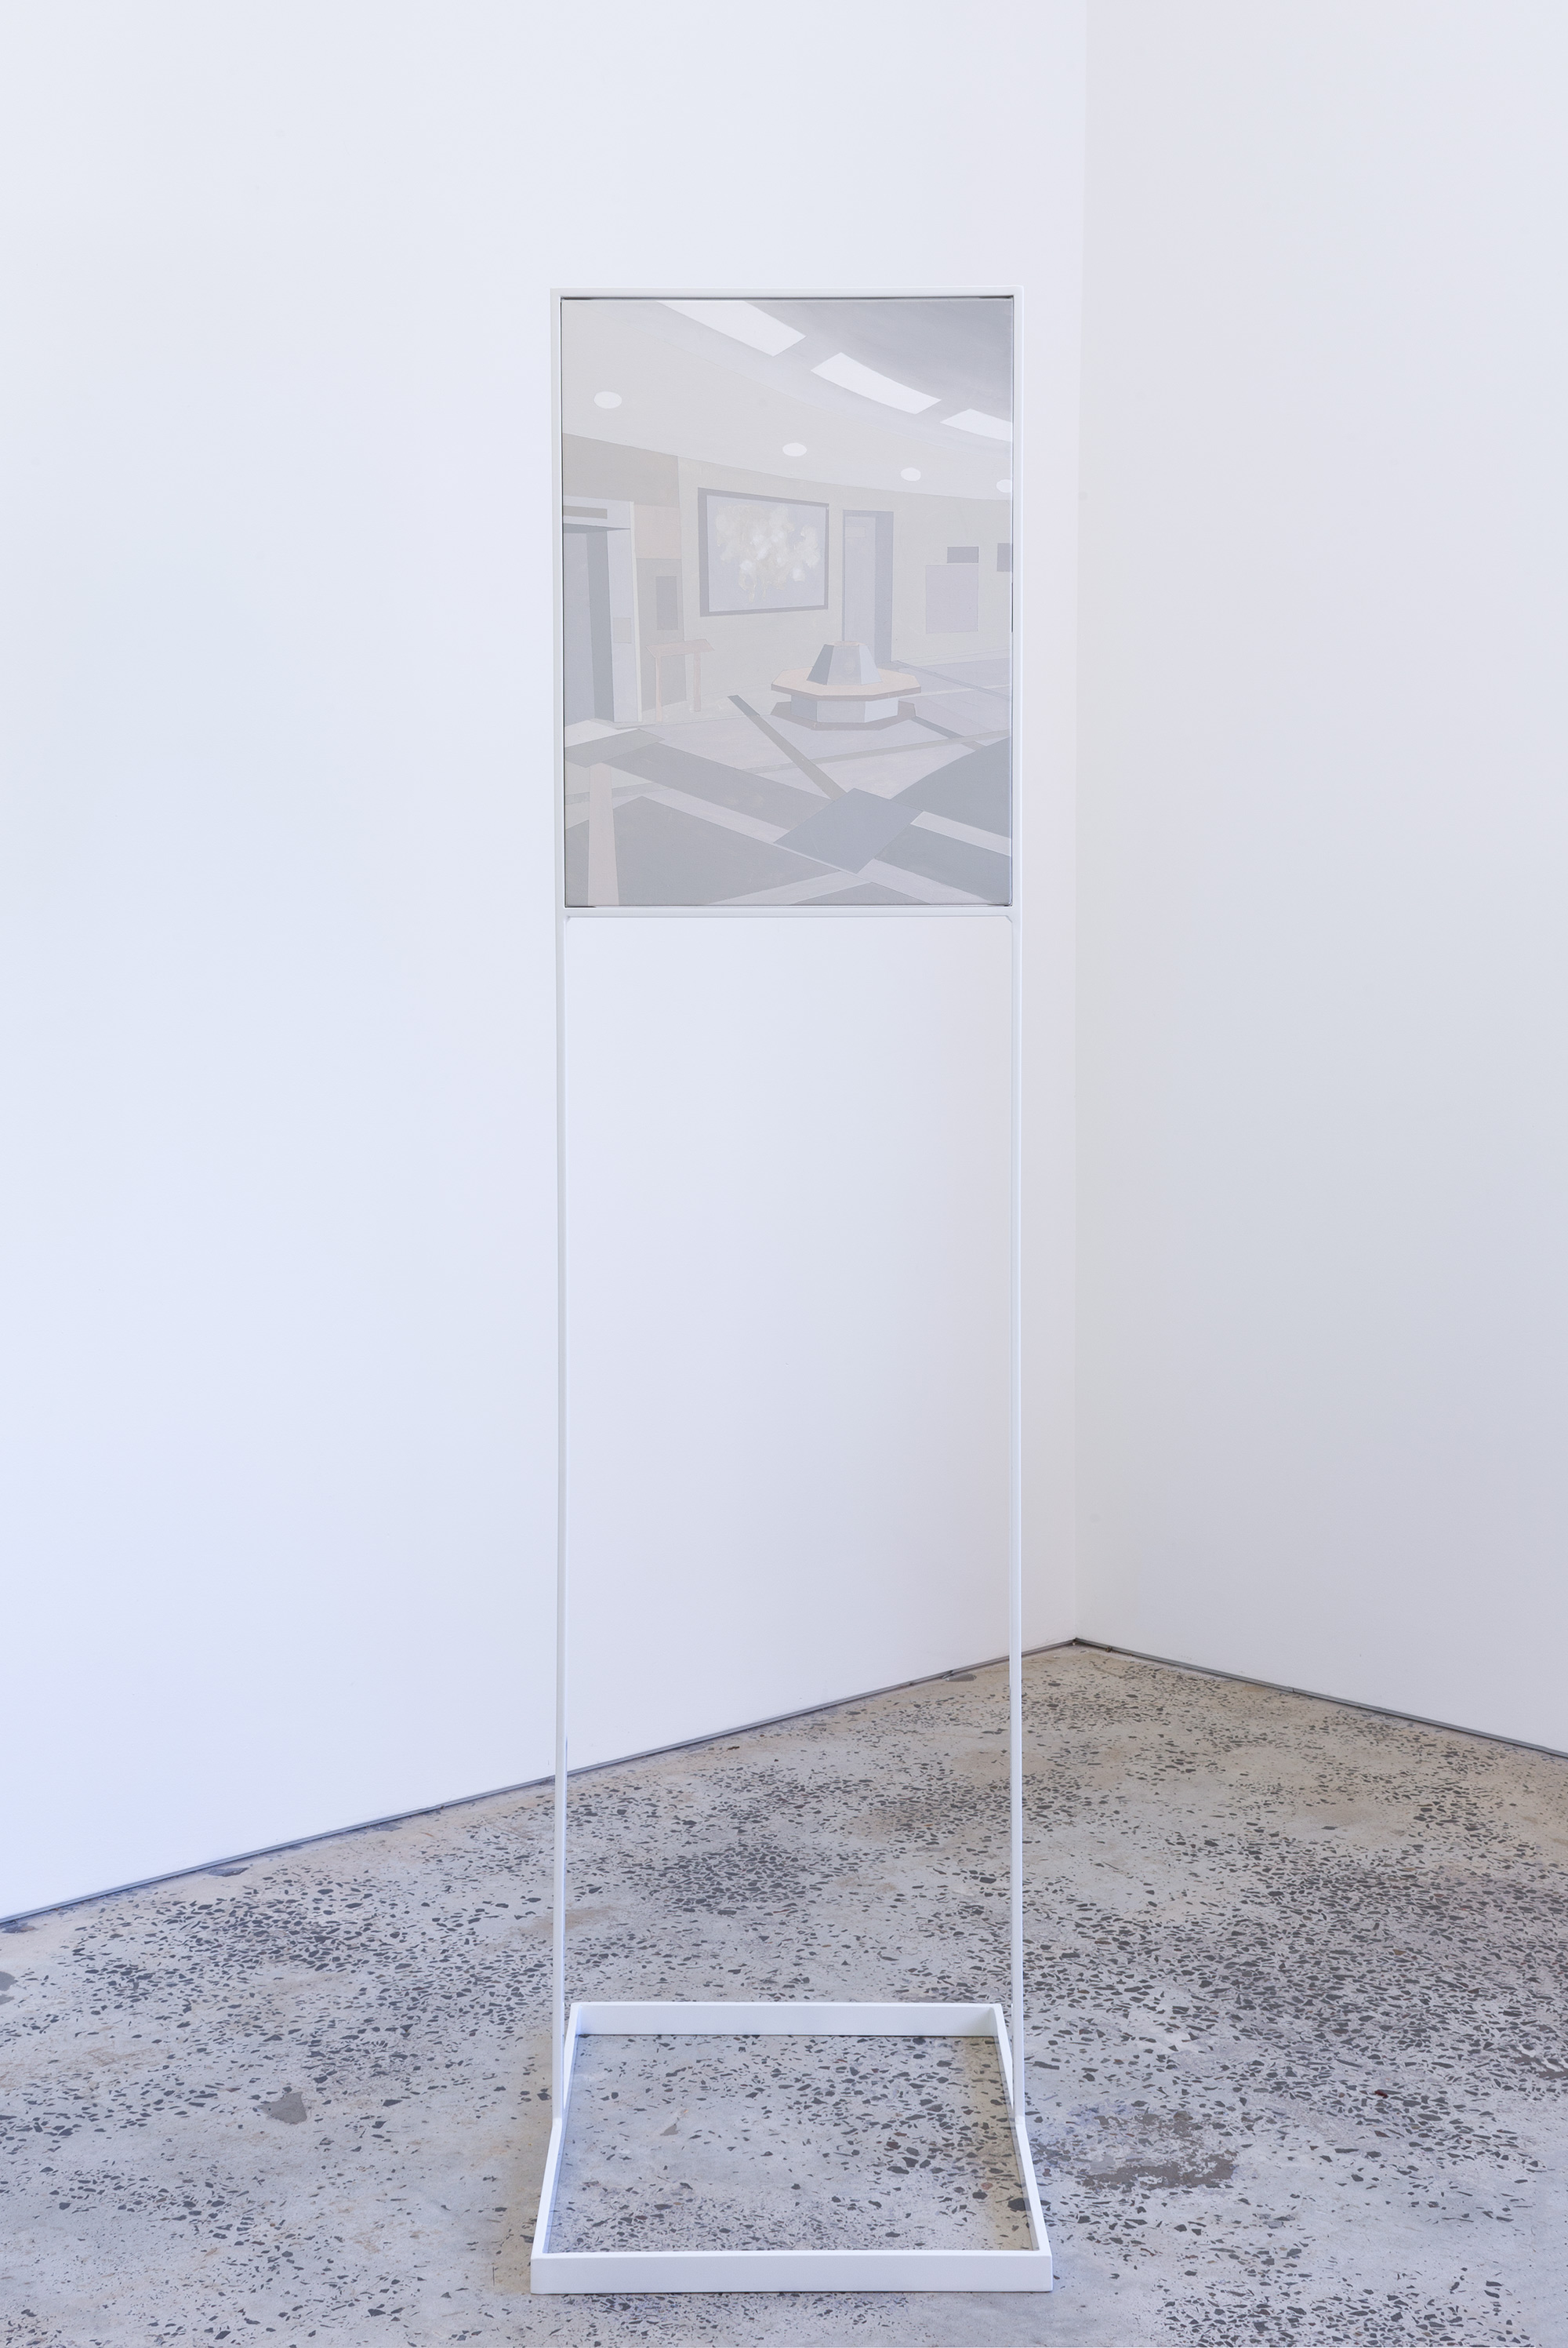 SITE/NON SITE , 2017, powder coated steel structure and gouache on stretched canvas, 184 x 63 x 48cm.